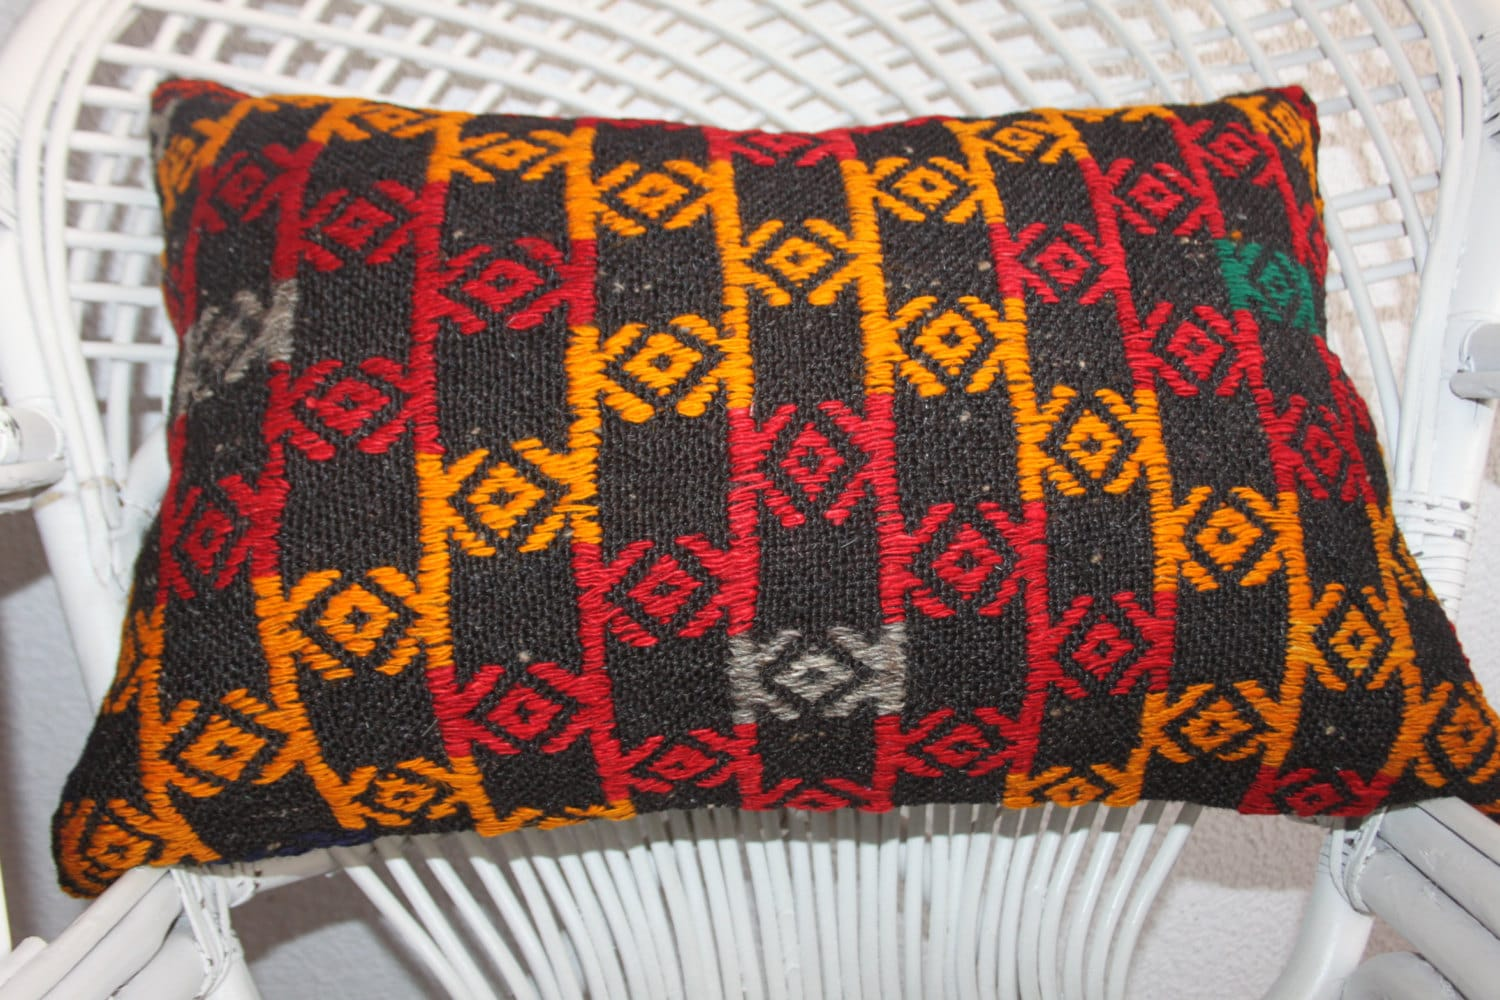 Red And Yellow Decorative Pillows : decorative pillows for couch red and yellow cushion pillow